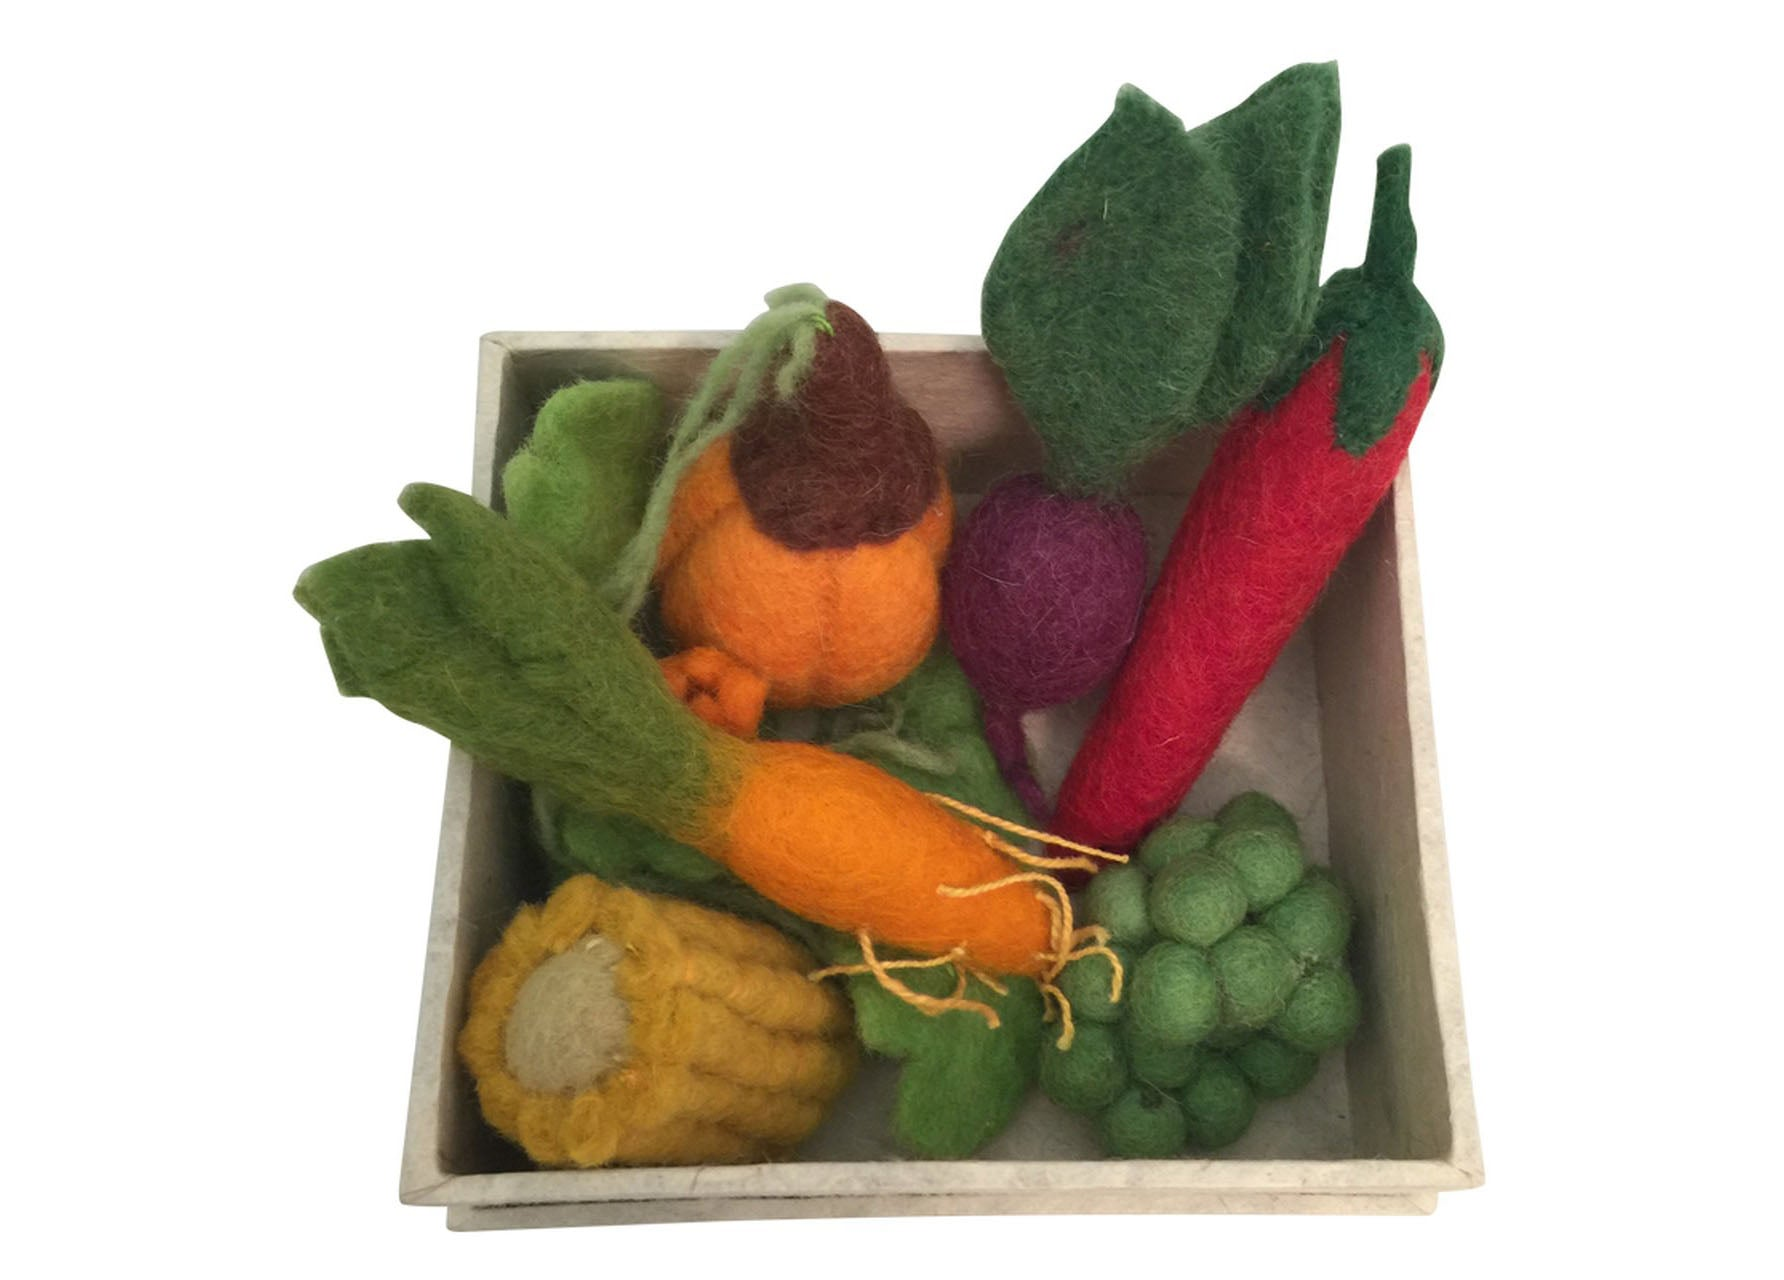 Mini Veg Set Boxed